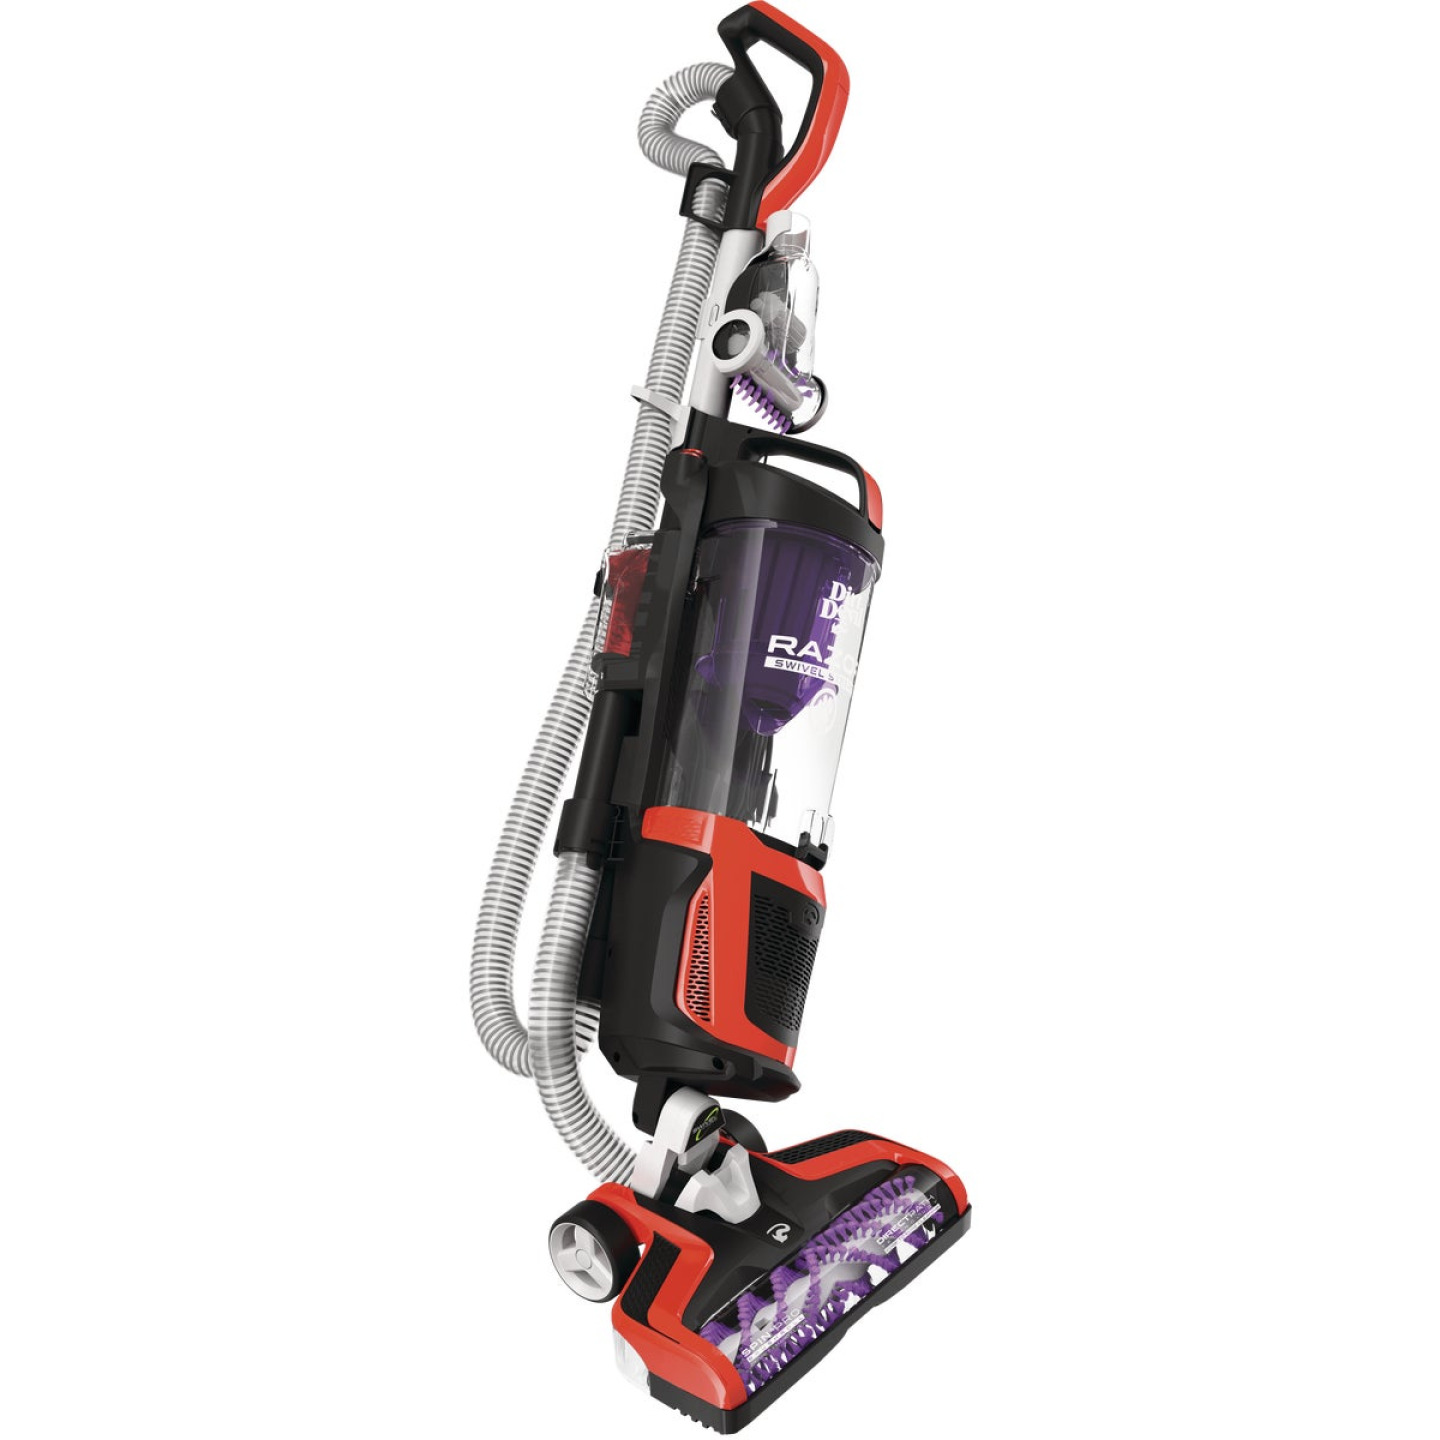 Dirt Devil Razor Pet w/Turbo Tool Upright Vacuum Cleaner Image 5